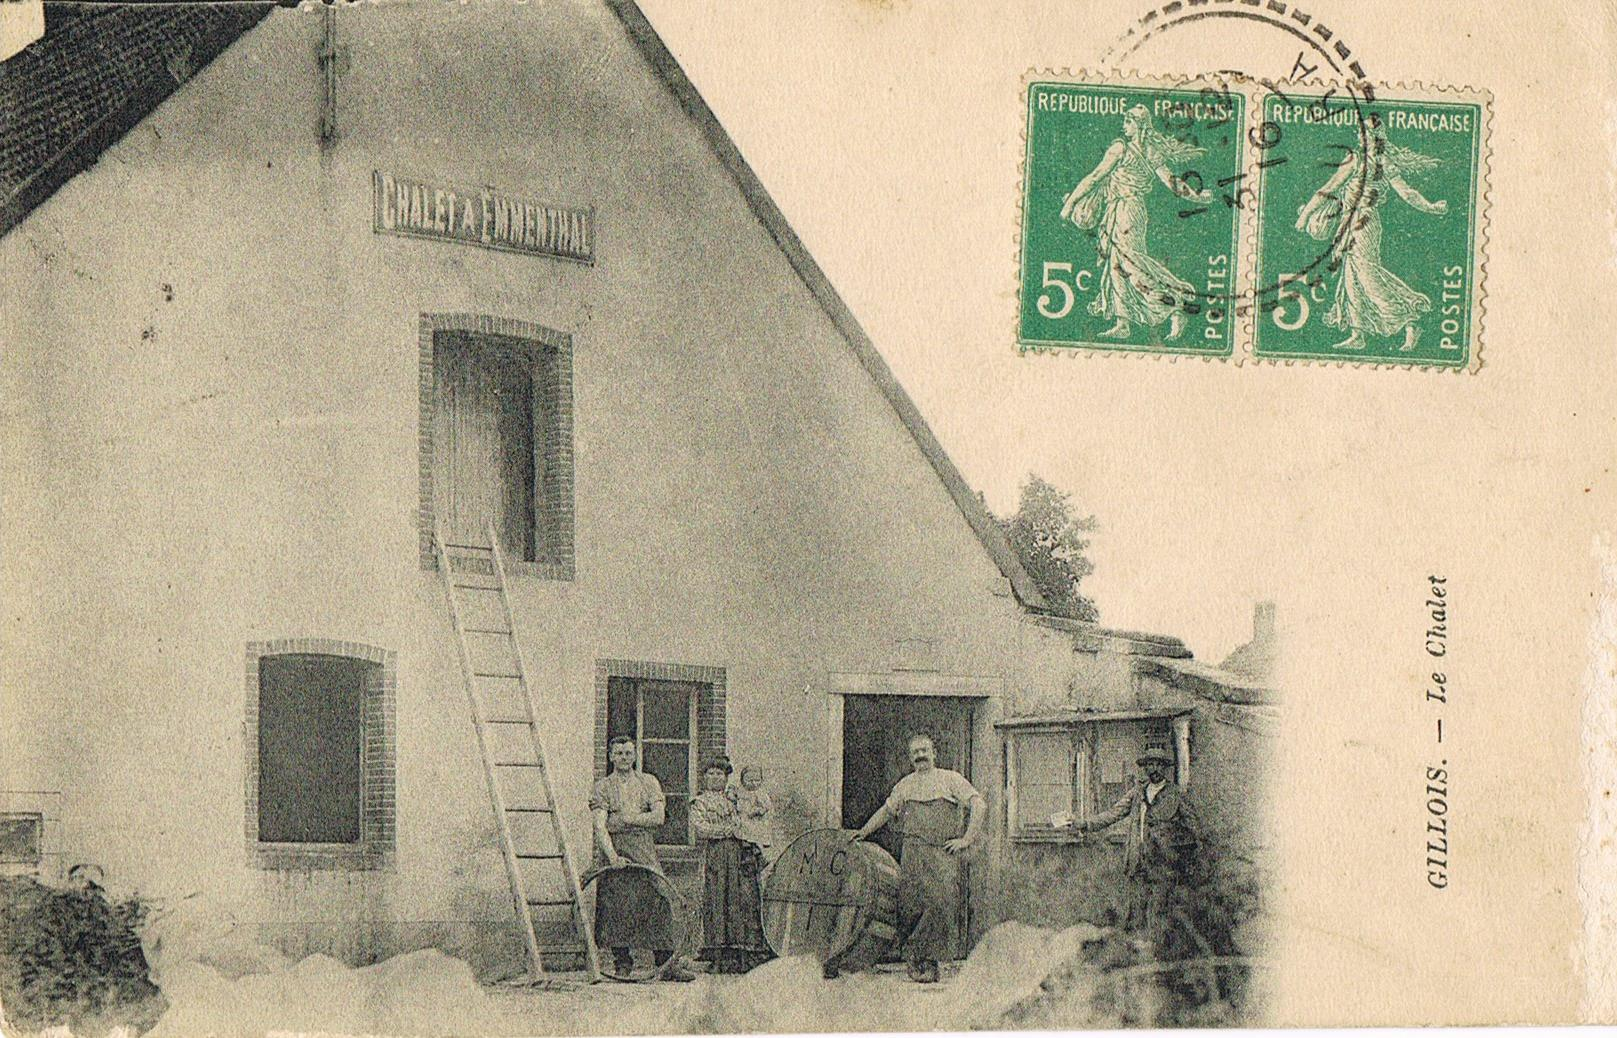 Chalets, Fruitières et Fromageries